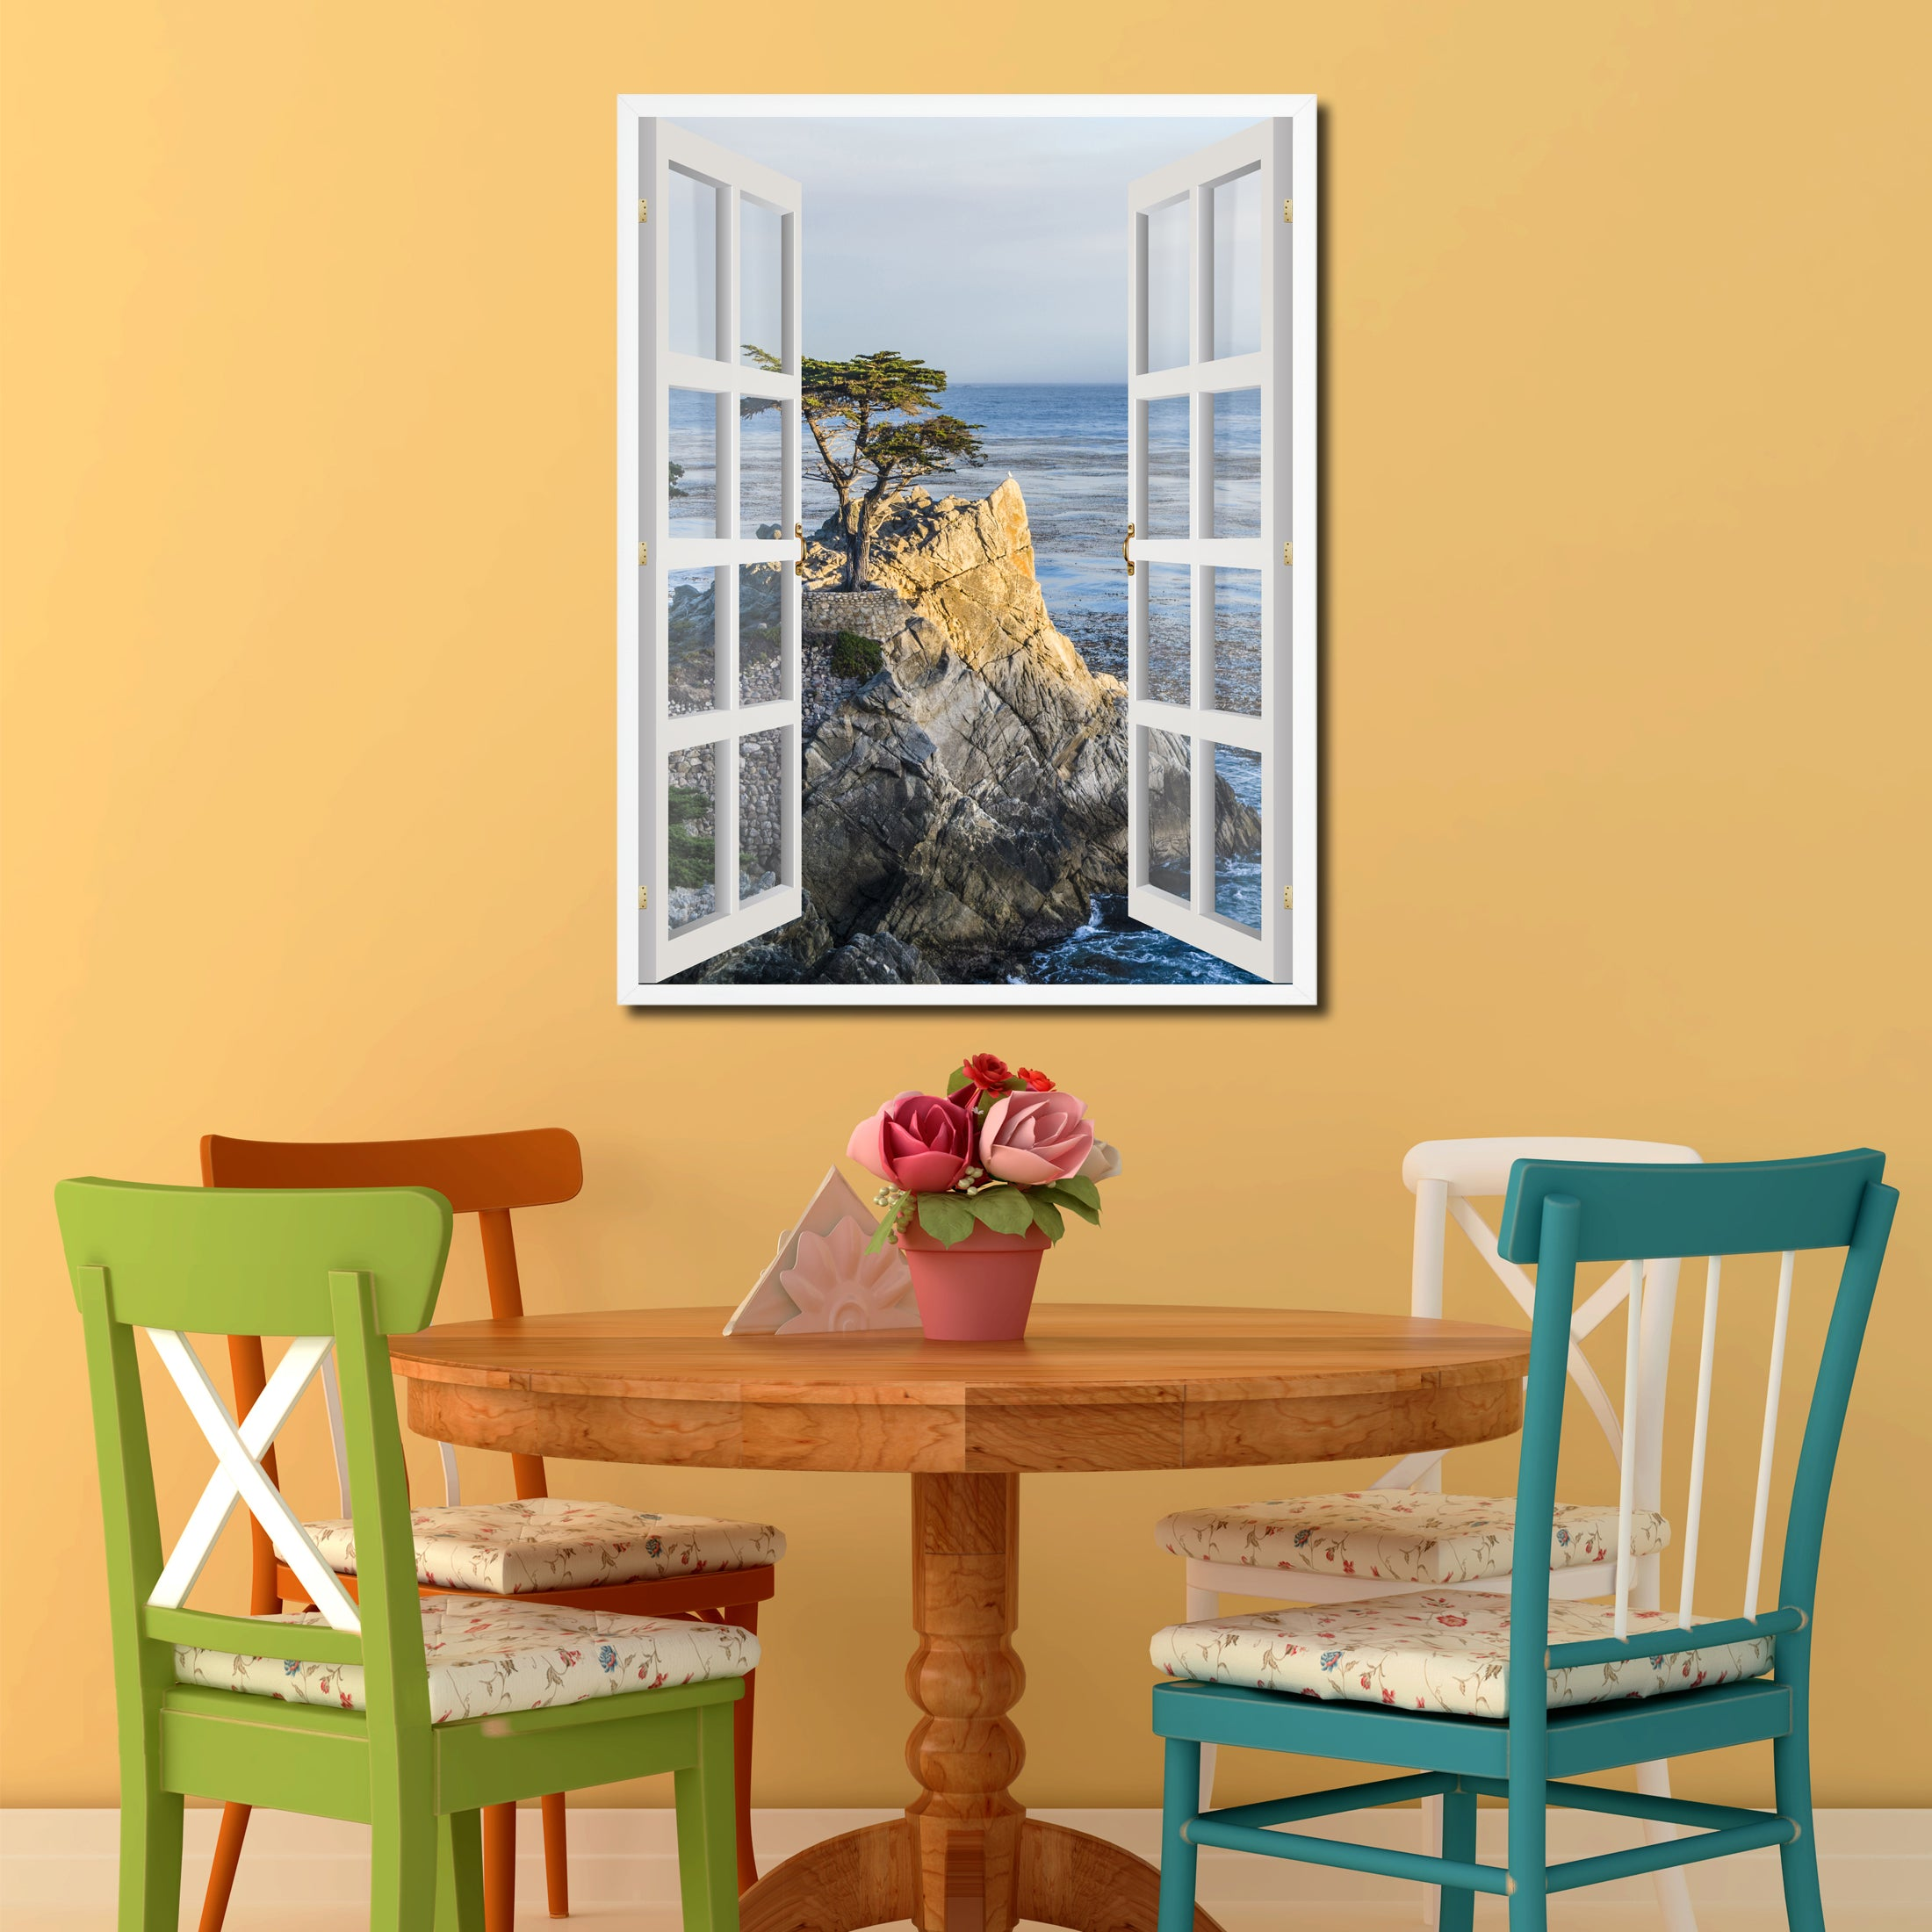 10 Beach House Decor Ideas: Monterey Beach View Picture Window Wall Art Home Decor